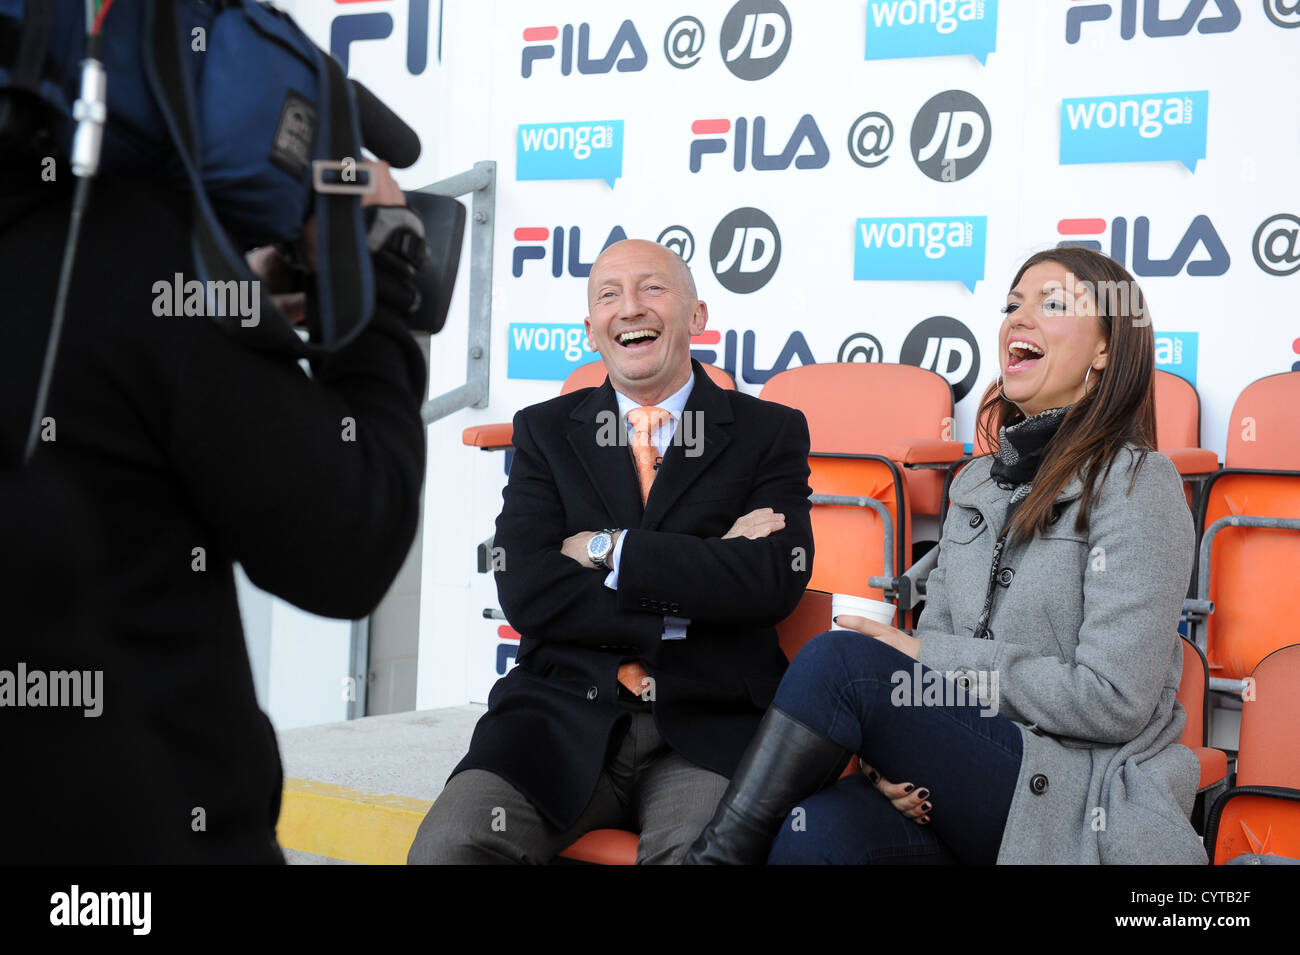 Take It Like A Fan presenter Bianca Westwood inteviewing Blackpool manager Ian Holloway - Stock Image